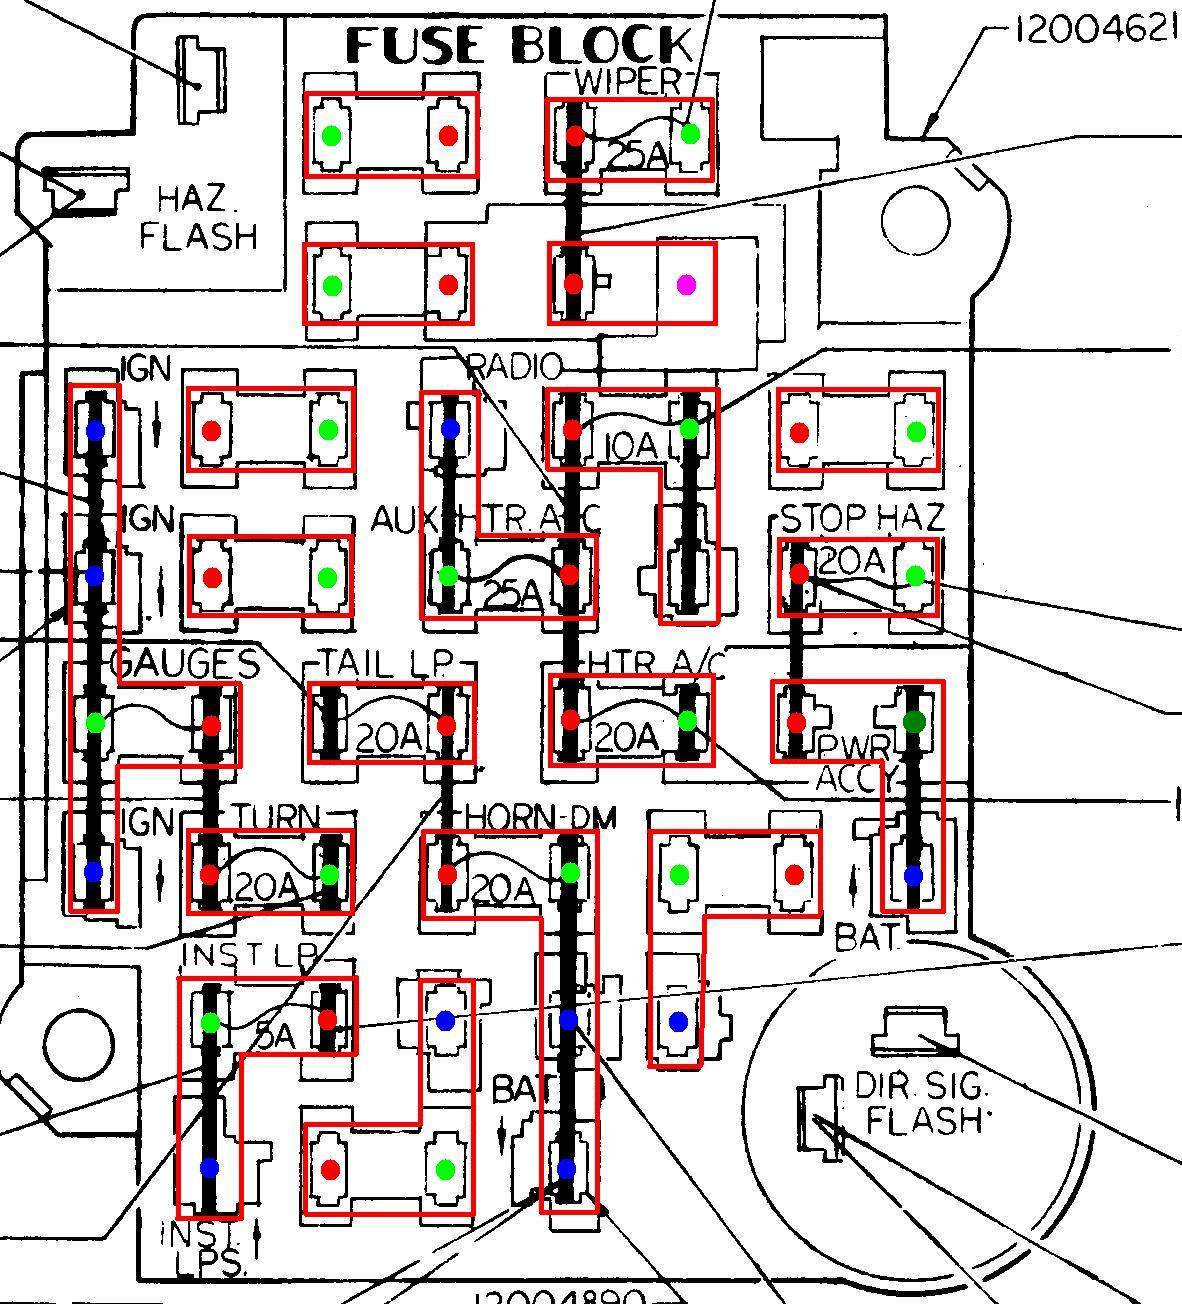 hight resolution of 86 pontiac fuse box experts of wiring diagram u2022 rh evilcloud co uk 1997 pontiac bonneville